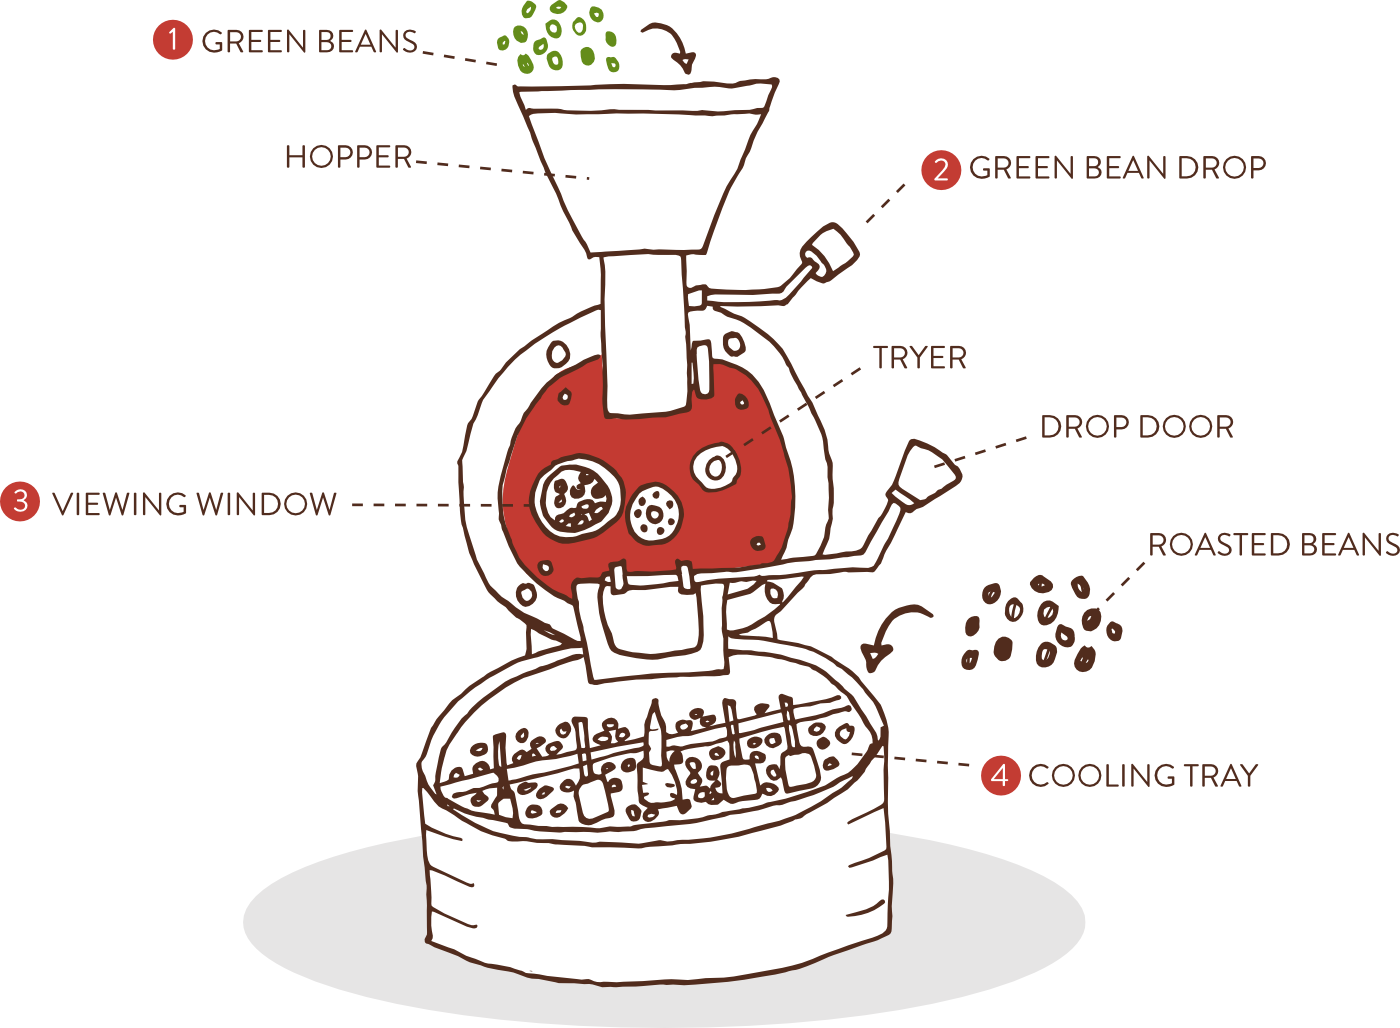 8th and roast, our roasting process